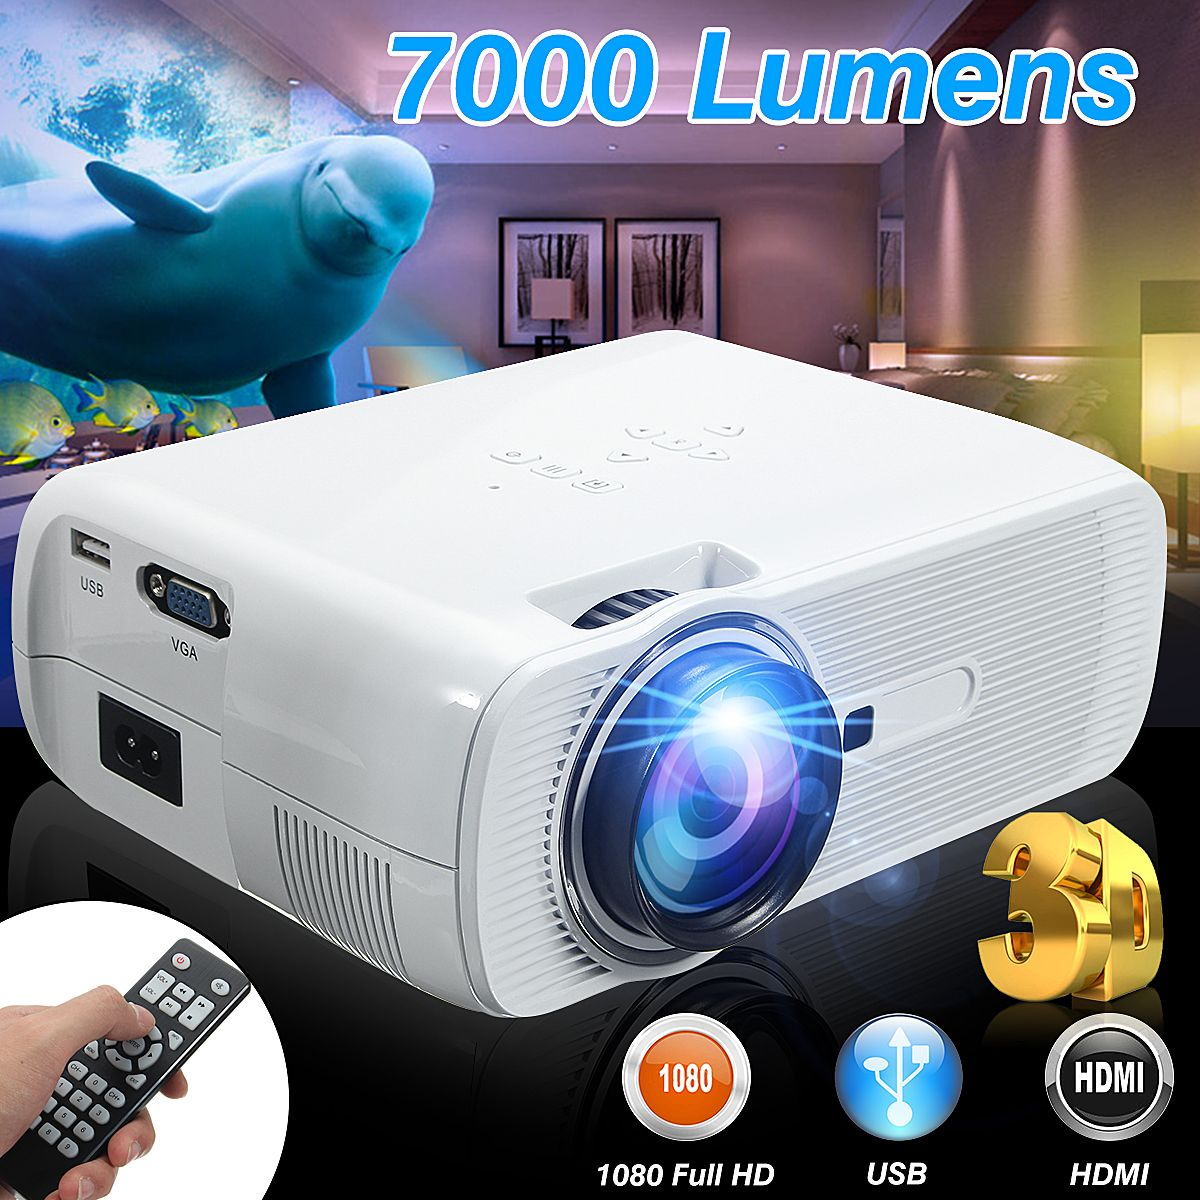 7000 Lumens HD LED Projector 3D Large Screen Home Theater Cinema LCD Wireless HDMI AV/VGA/USB/SD/HDMI/TV Multimedia Beamer